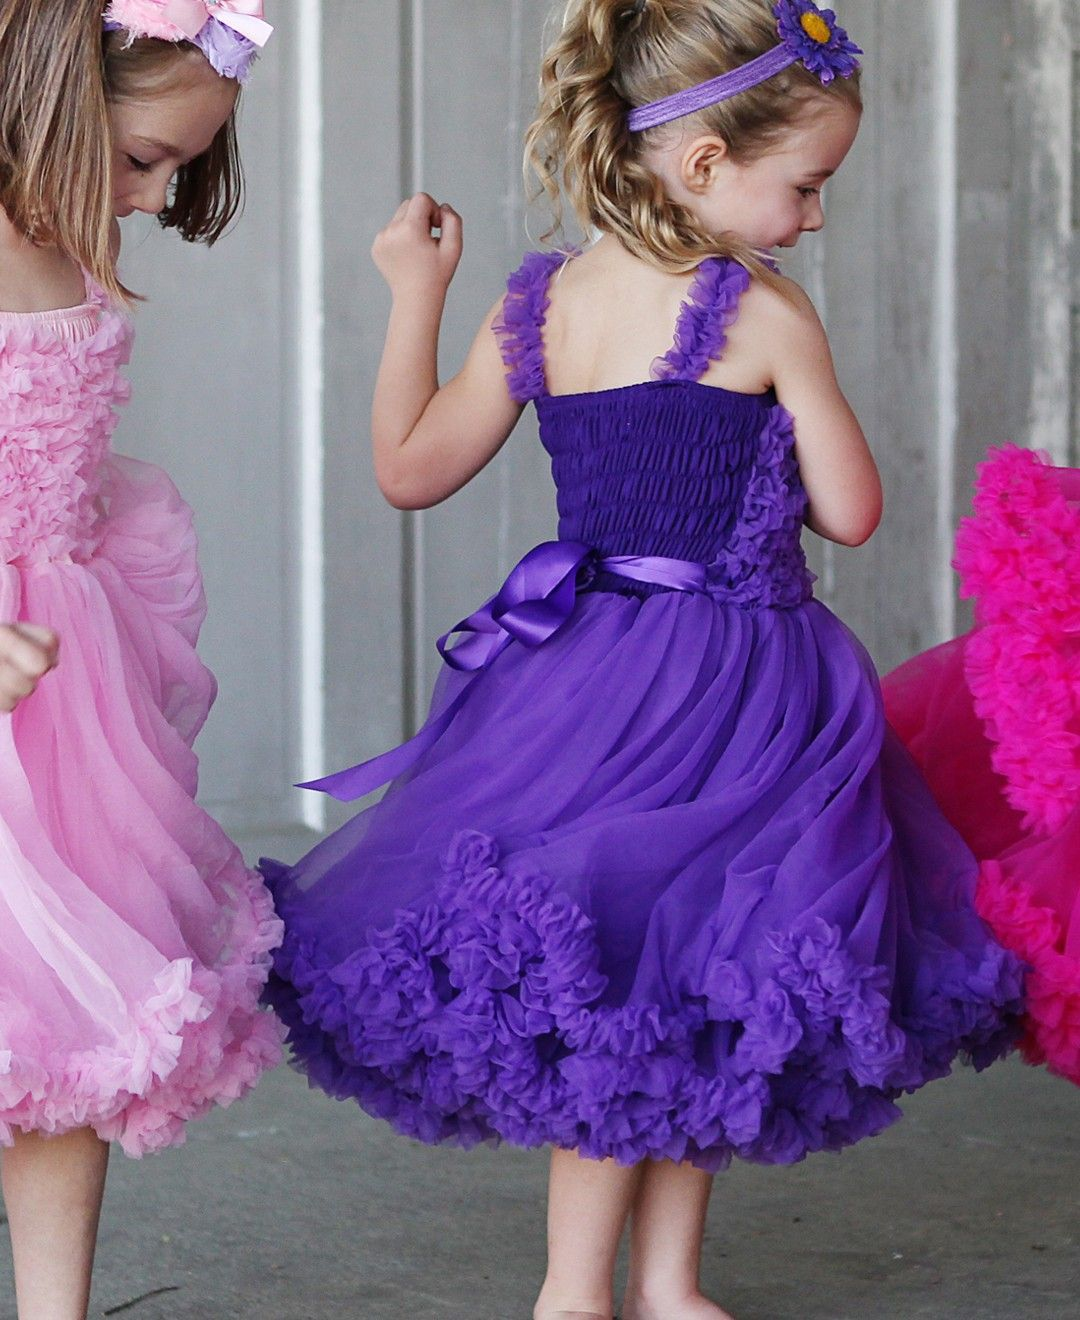 A gorgeous purple dress from Rufflebutts that will make your little girl feel positively regal. #kid #girl #fashion